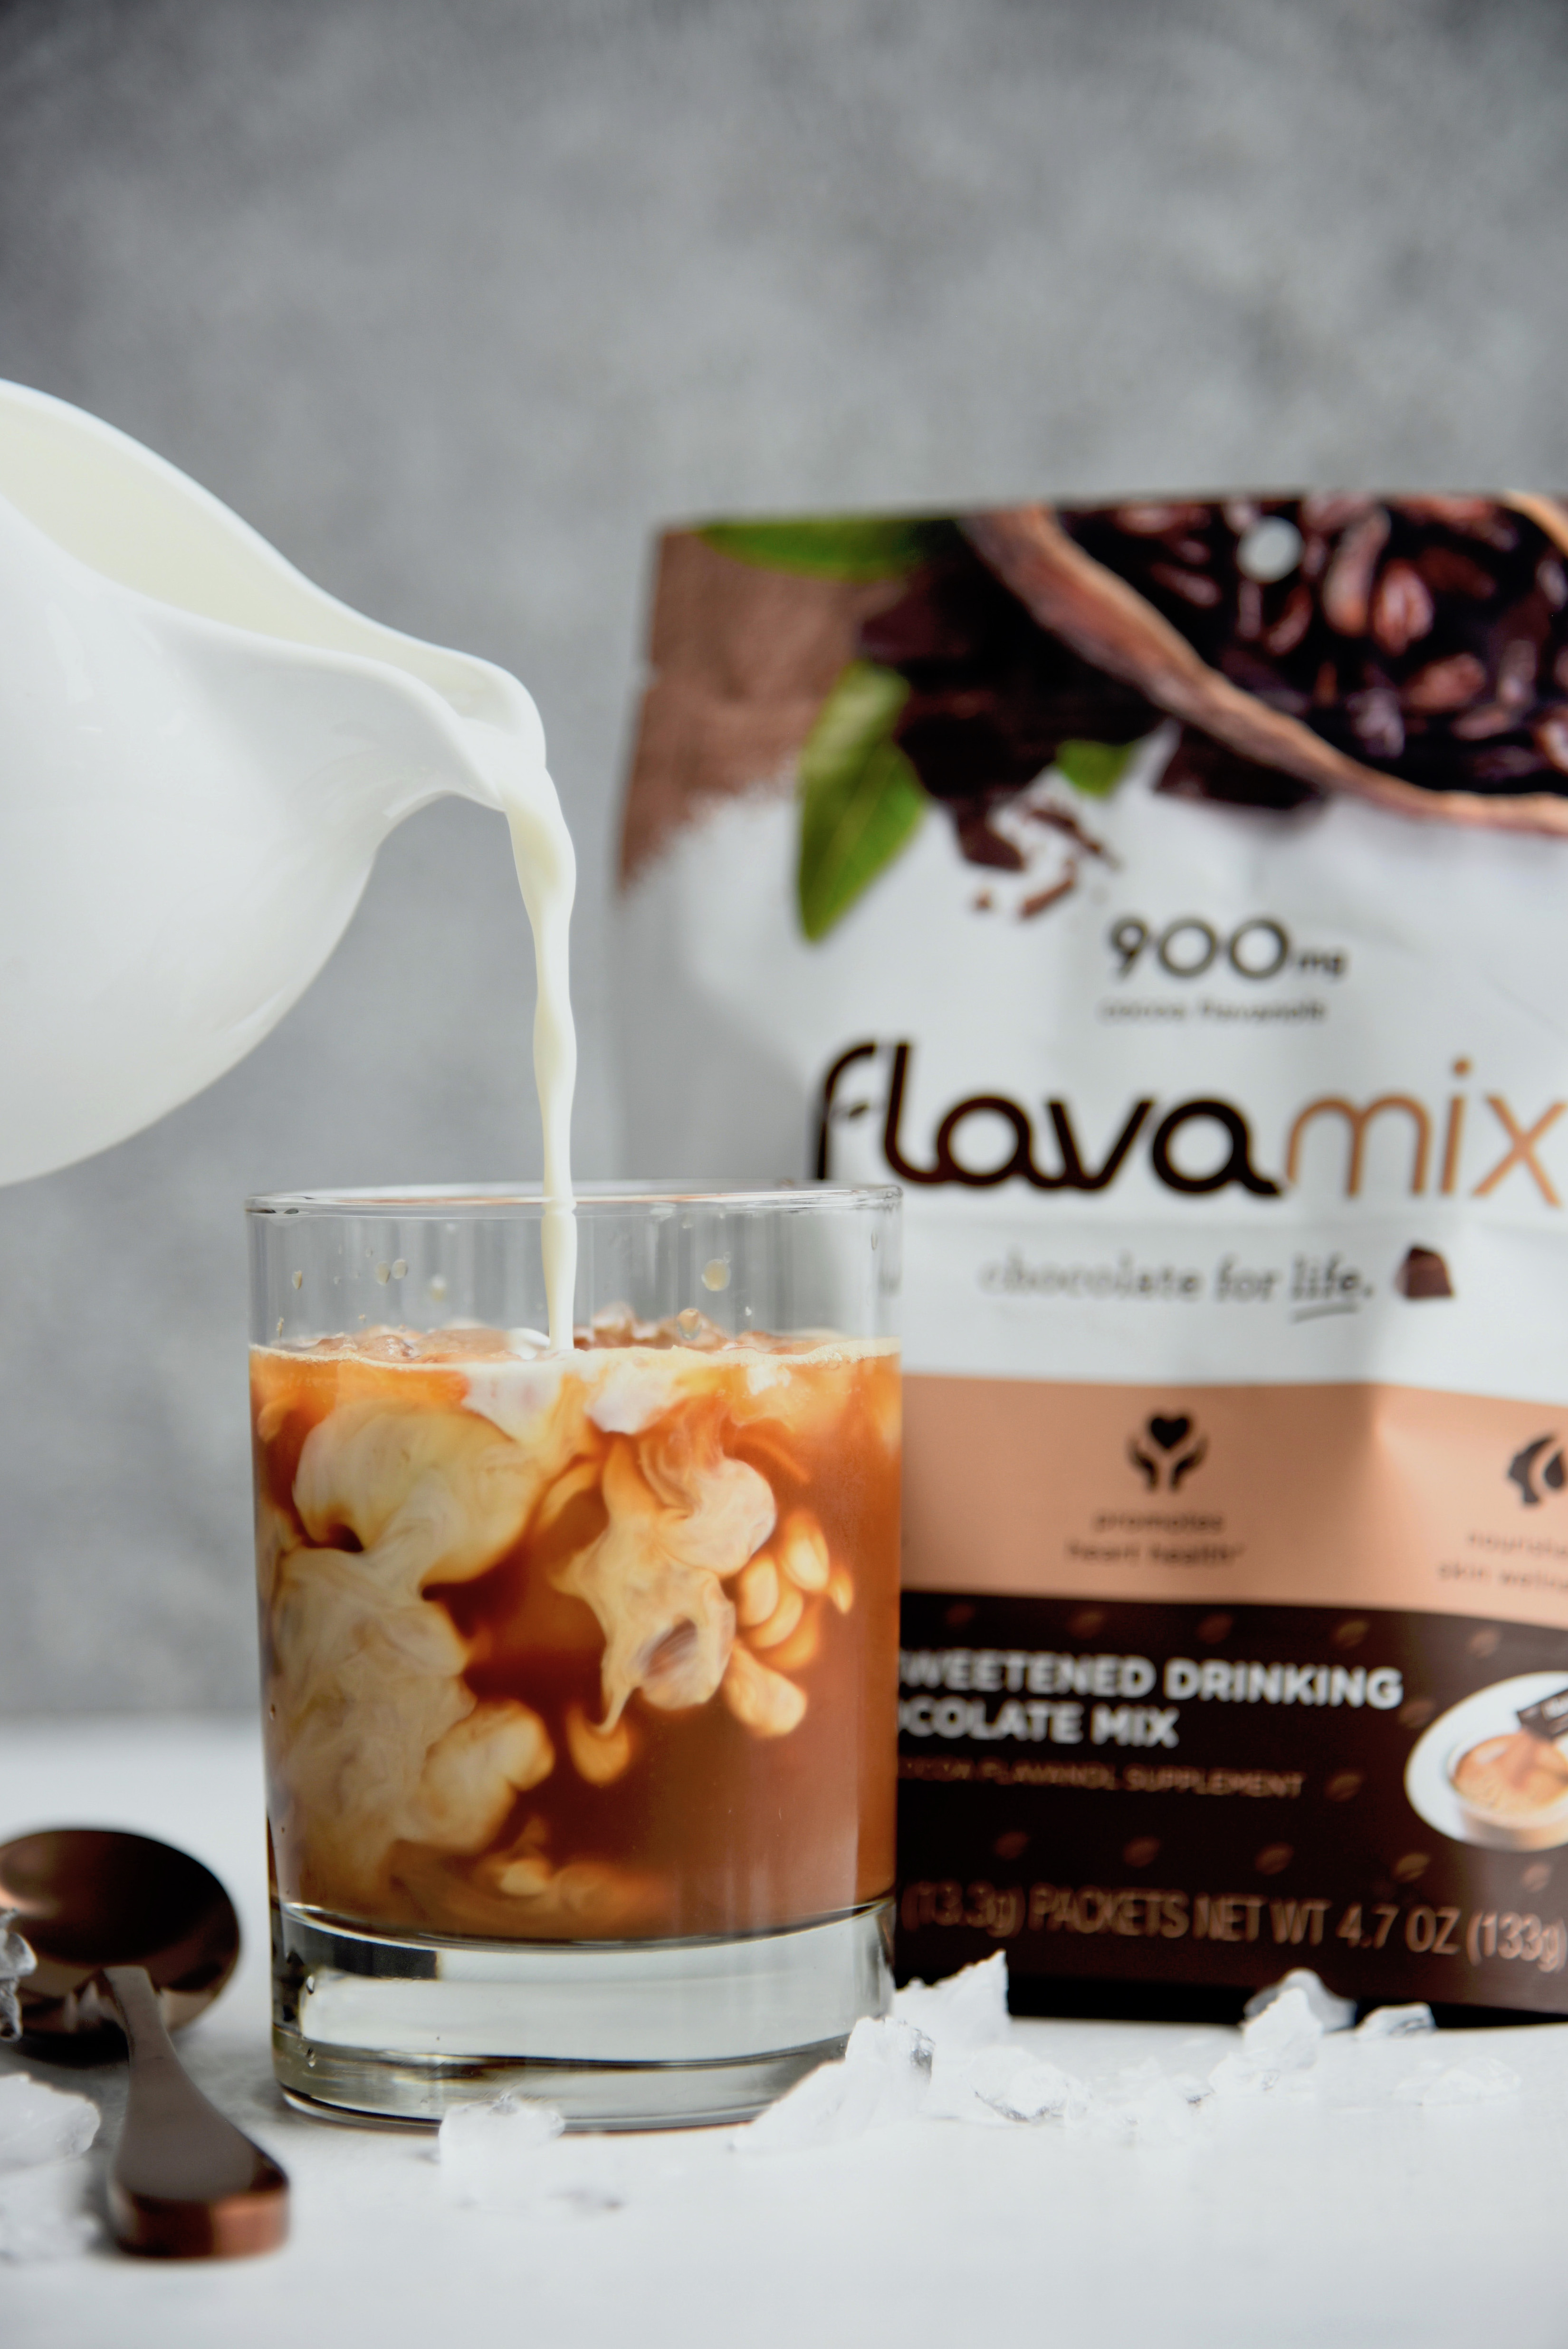 Café Mocha (Iced or Warm) with FlavaMix Unsweetened Drinking Chocolate and 900mg Cocoa Flavanols